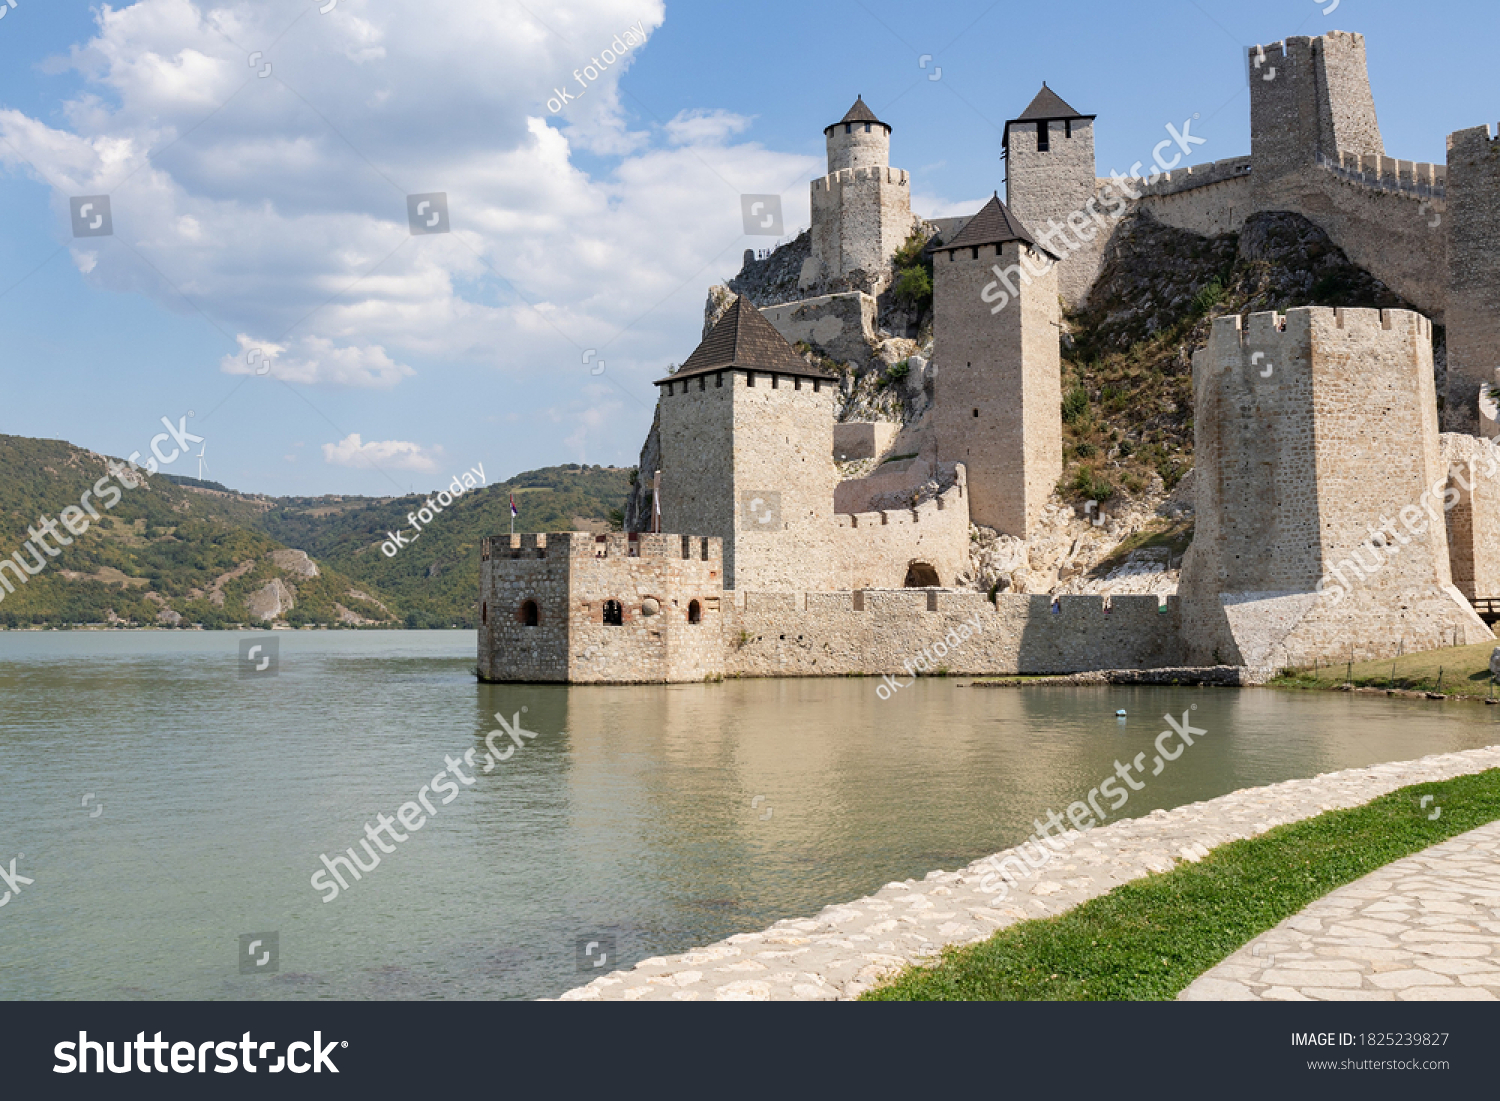 View of the Golubac fortress from the Danube bank on a sunny day. Serbia, Golubac, 13 September 2020